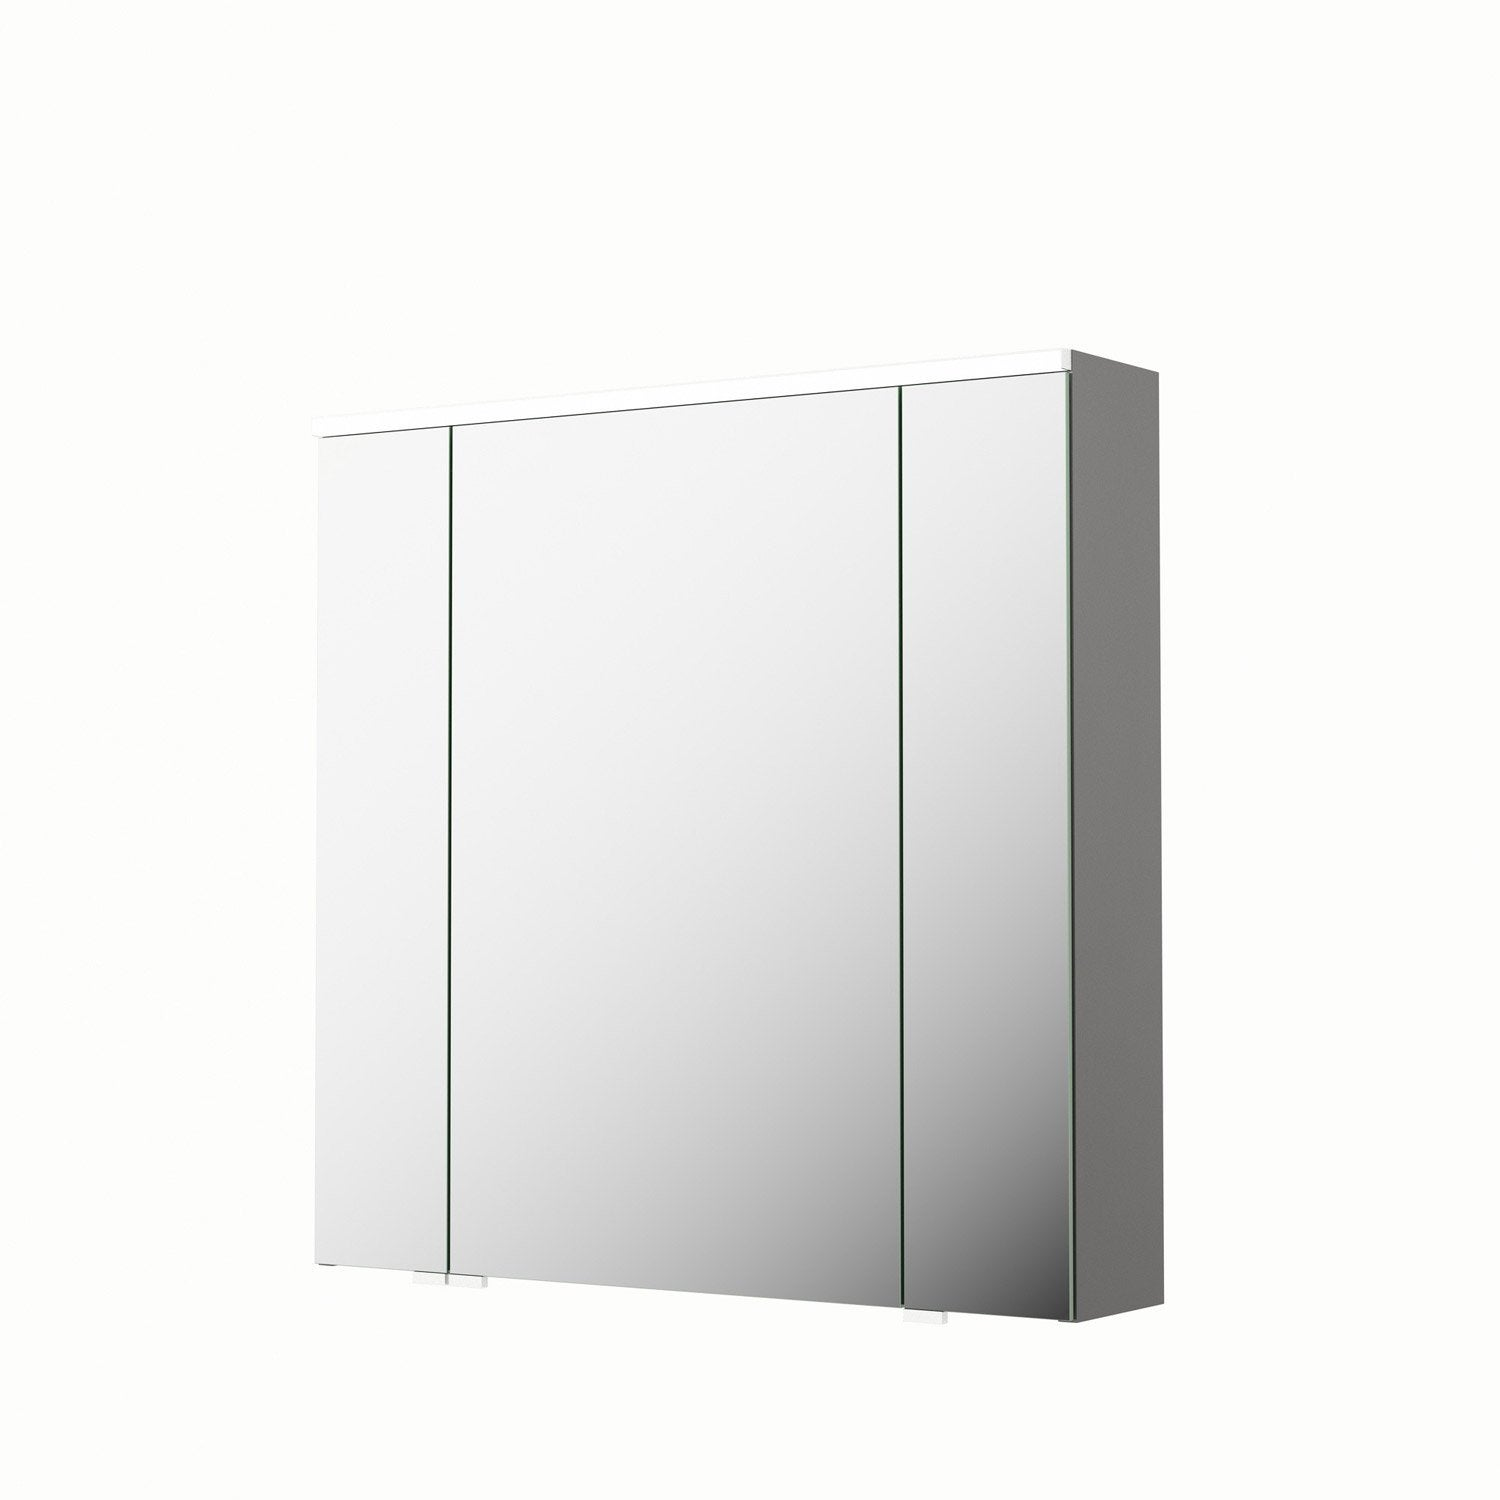 armoire de toilette lumineuse l 75 cm gris sensea neo leroy merlin. Black Bedroom Furniture Sets. Home Design Ideas